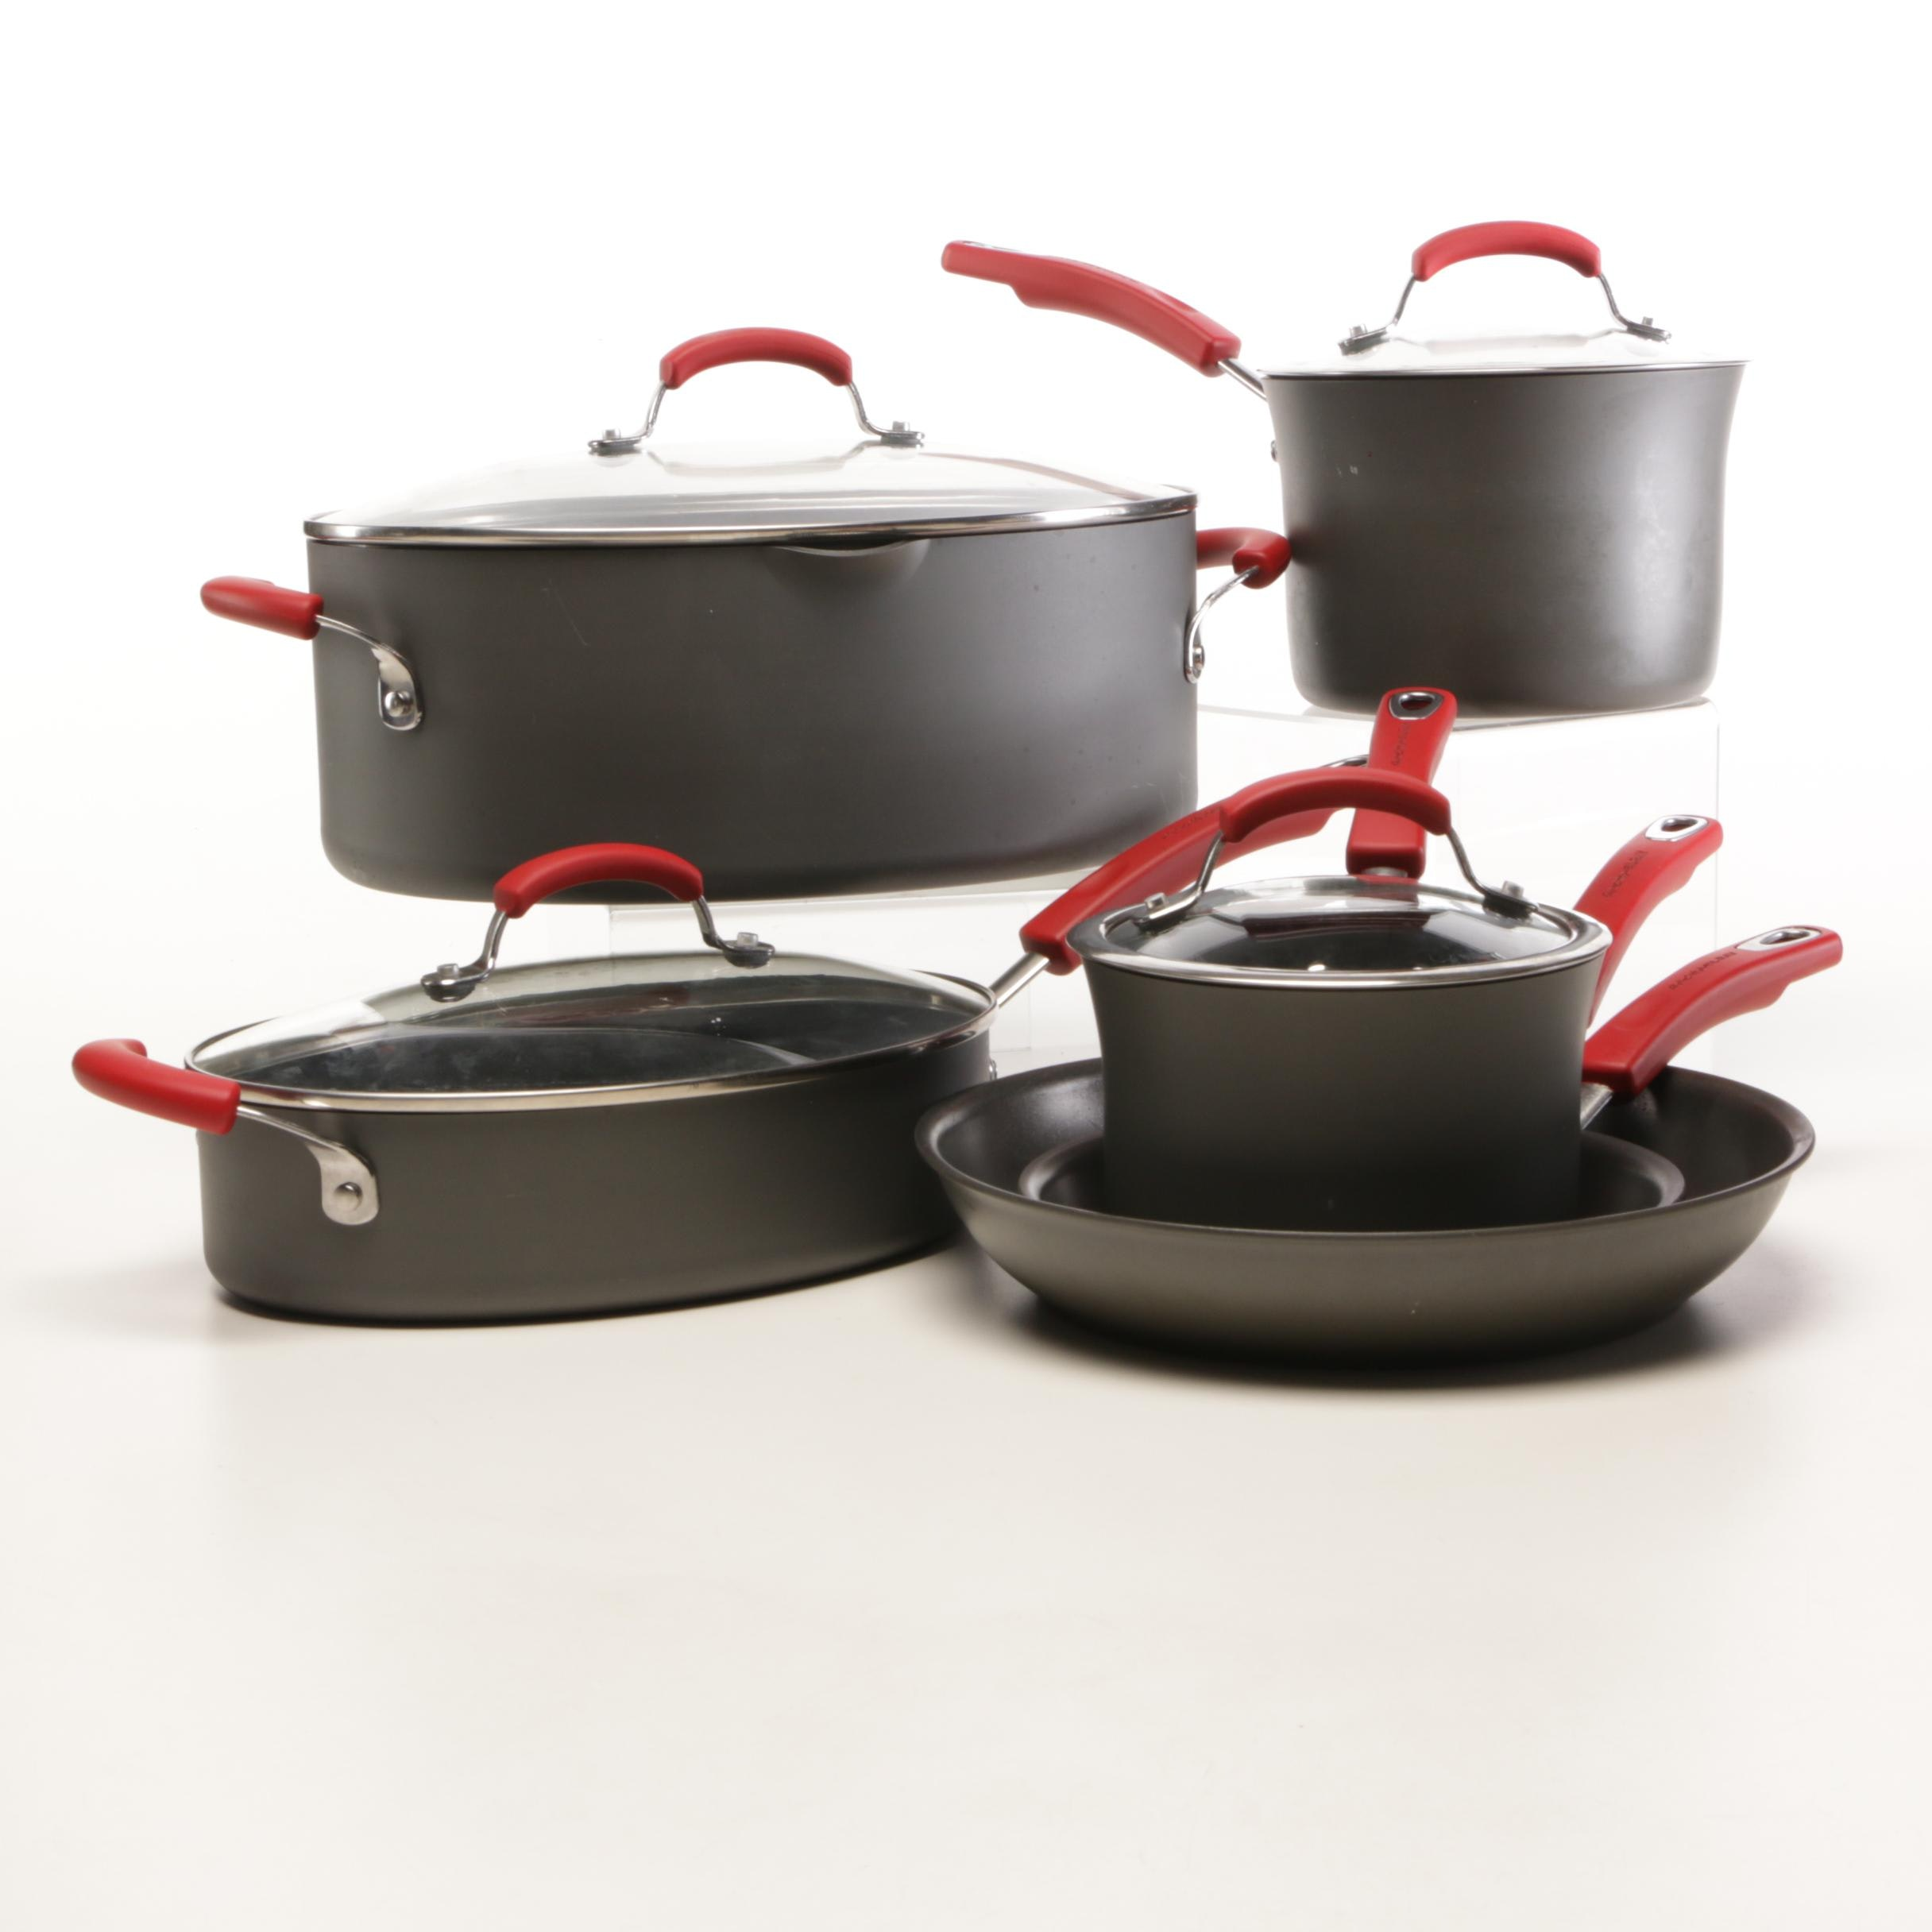 Rachael Ray Hard Anodized Cookware in Grey and Red